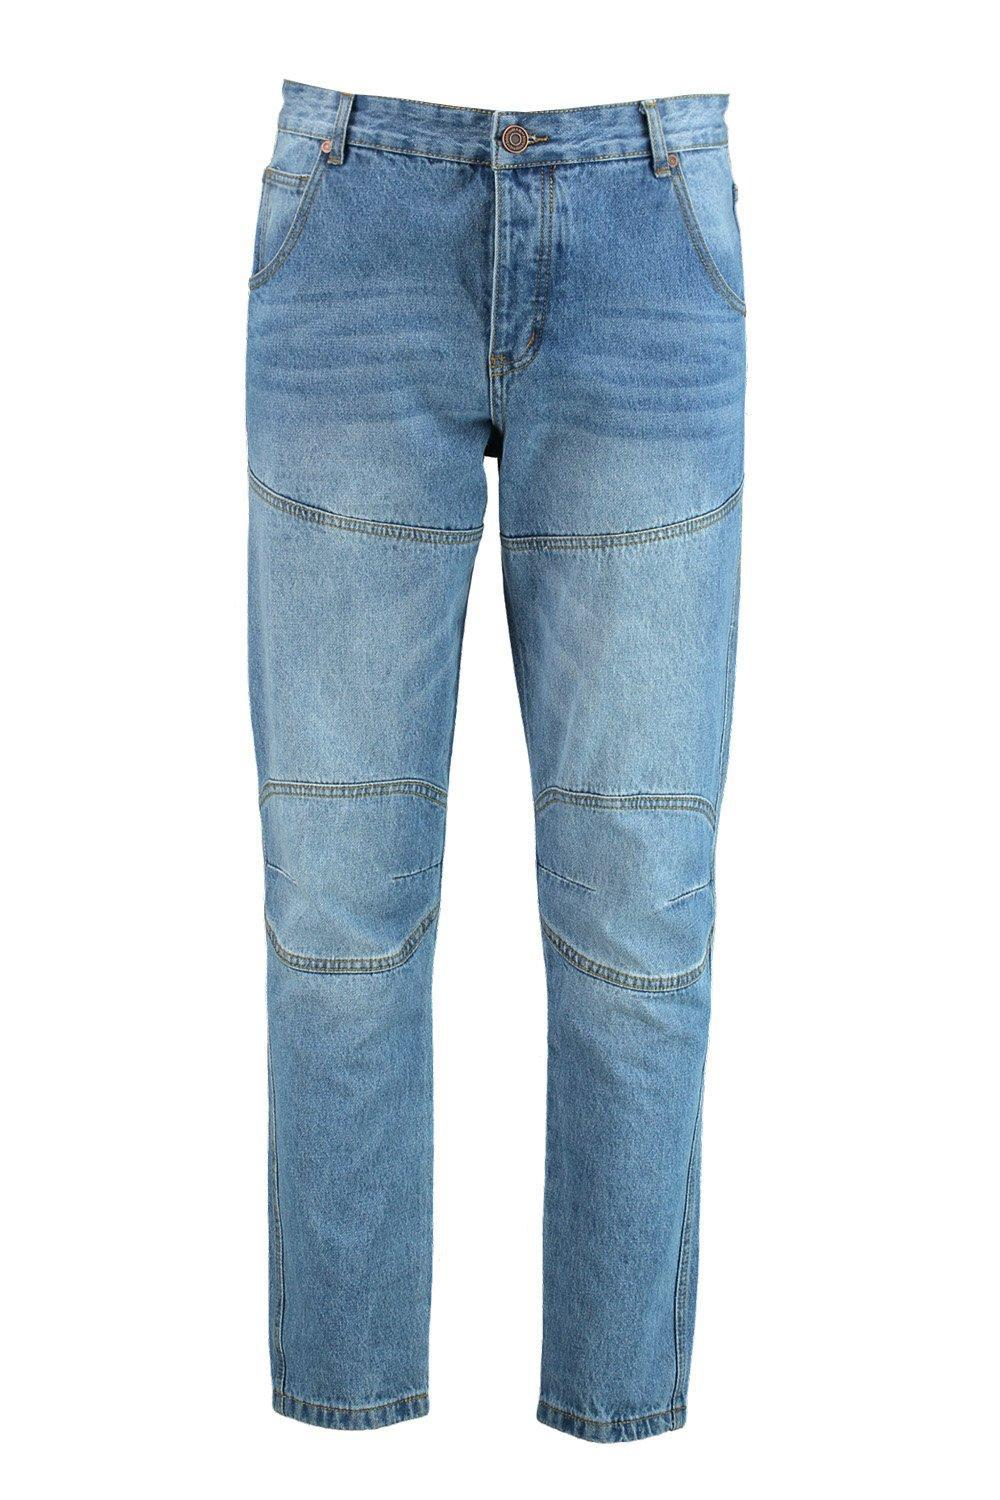 Boohoo Denim Tapered Fit Panelled Jeans in Mid Blue (Blue) for Men